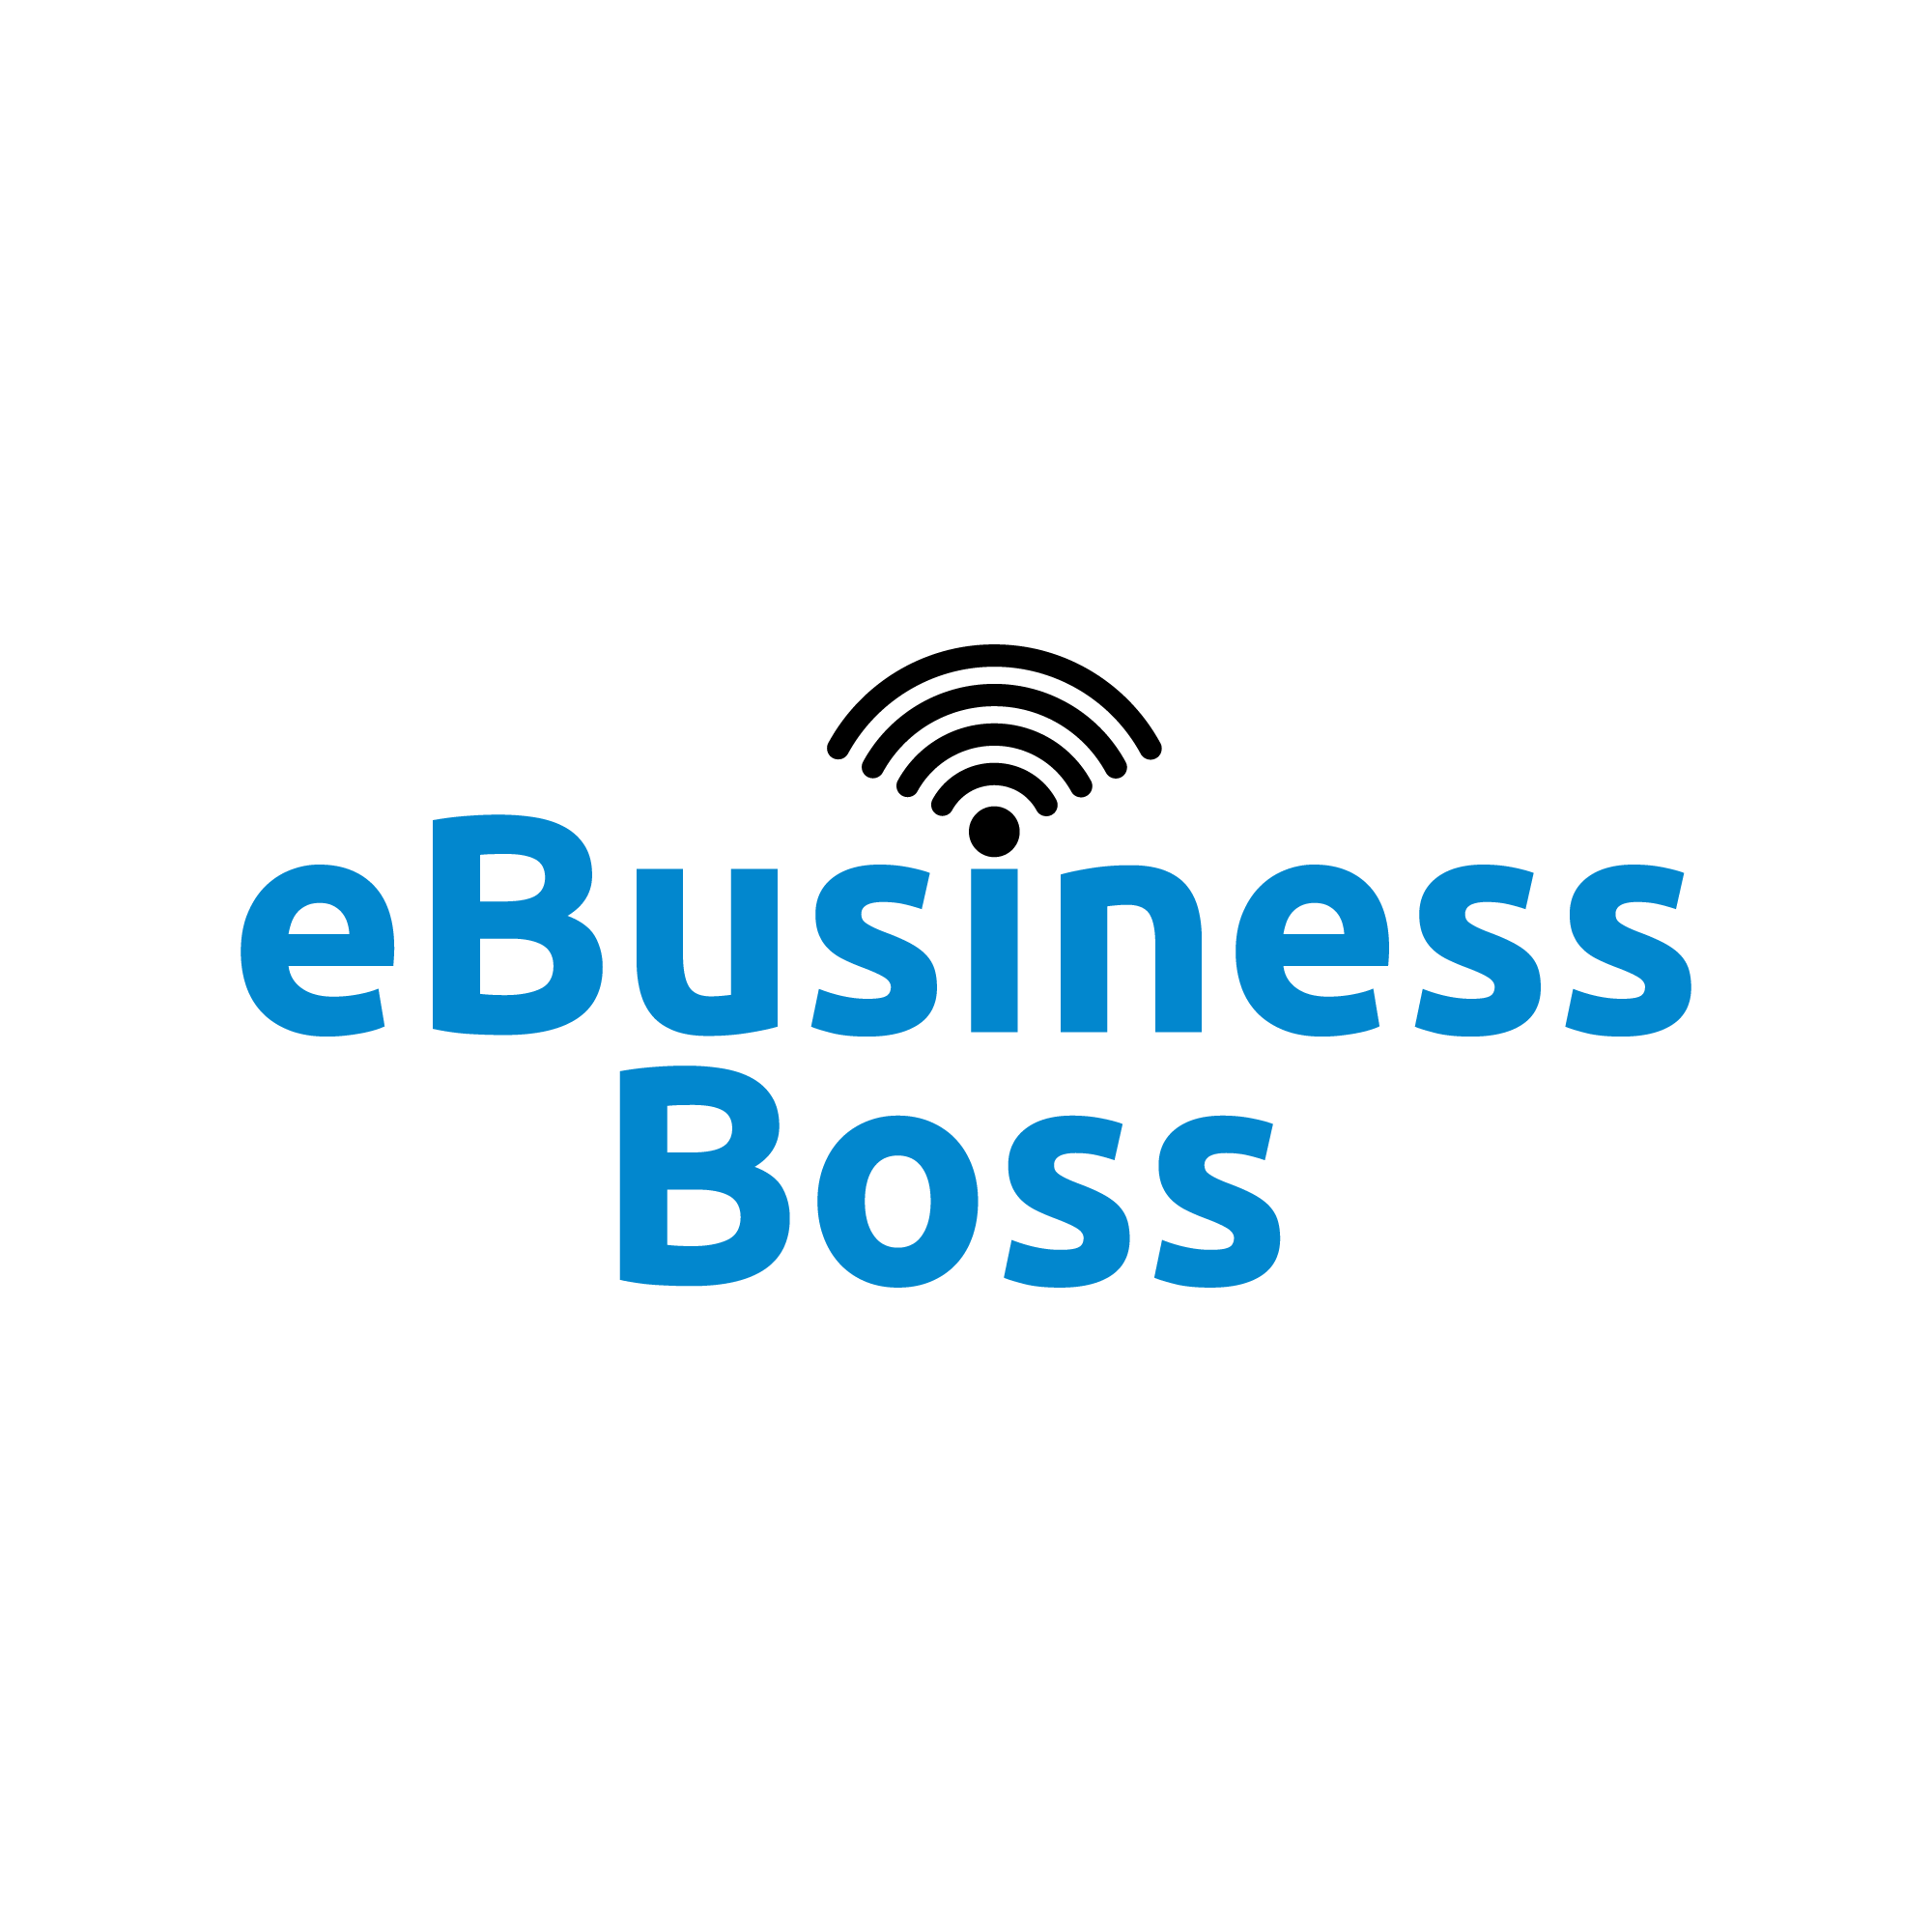 eBusinessBoss